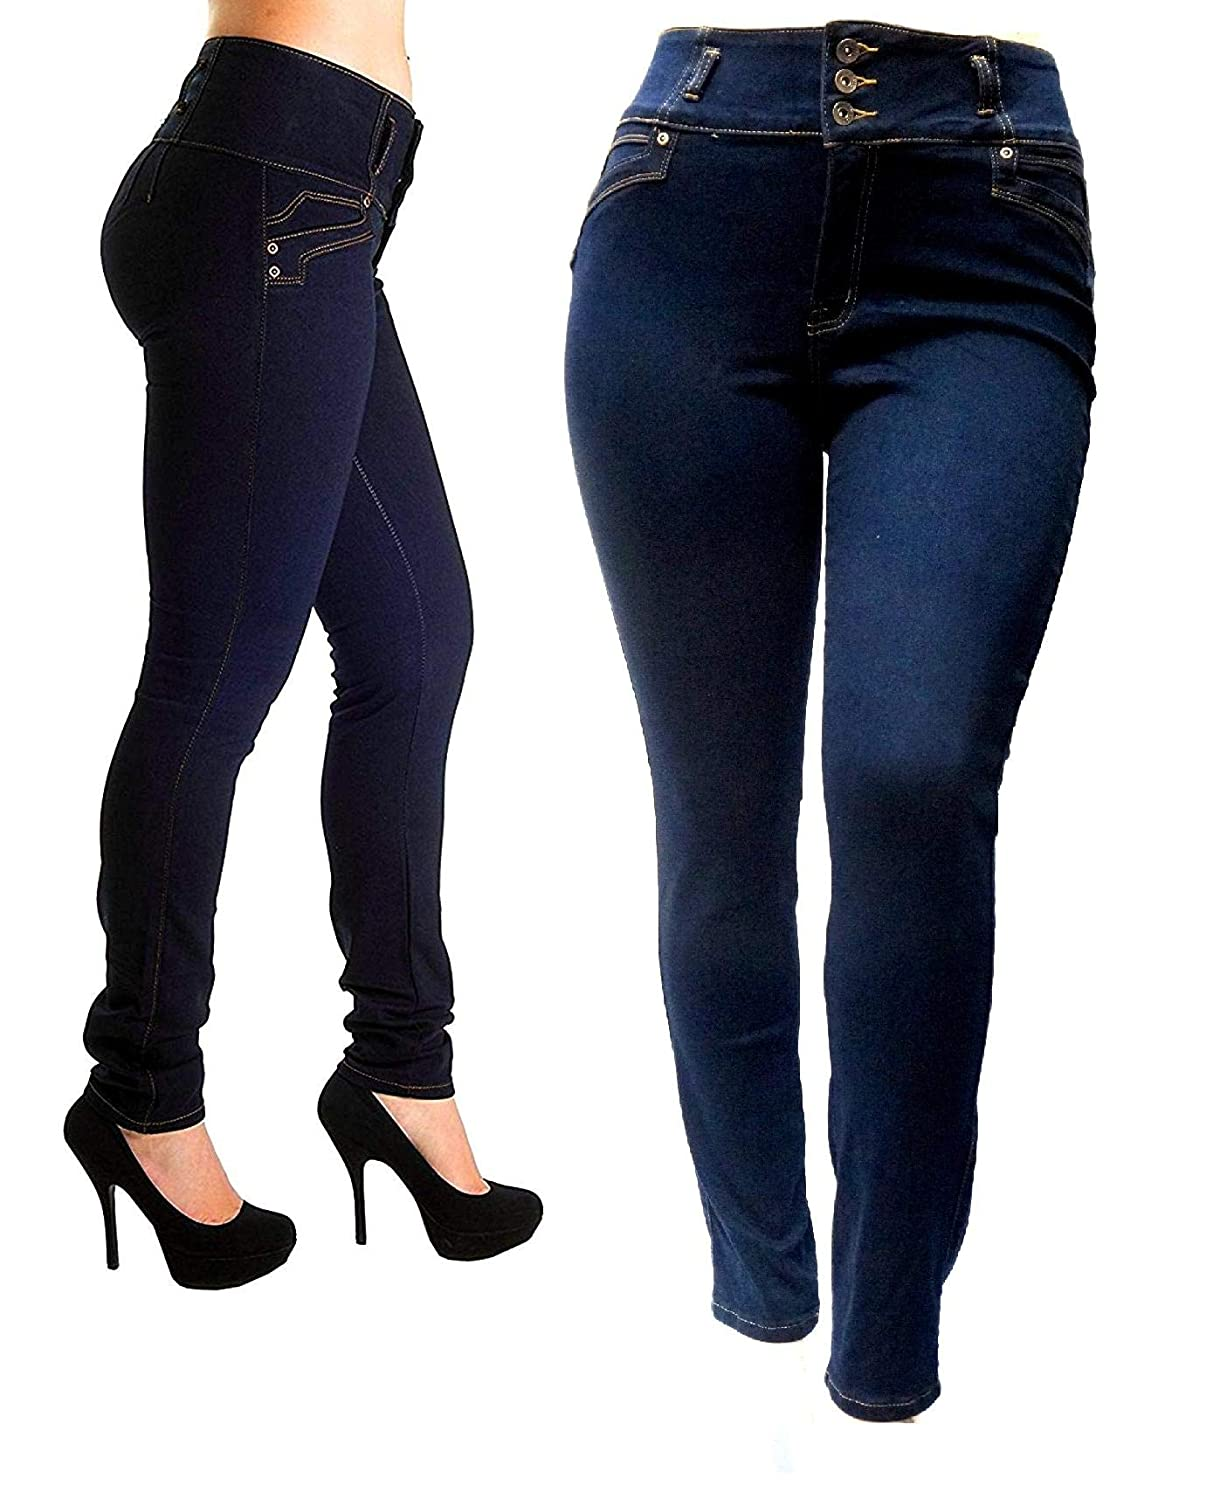 3116f021e2 These PREMIUM denim jeans pants are comfortable and amazingly versatile.  Fabric- 76% cotton 22% POLYESTER 2% spandex Stretch